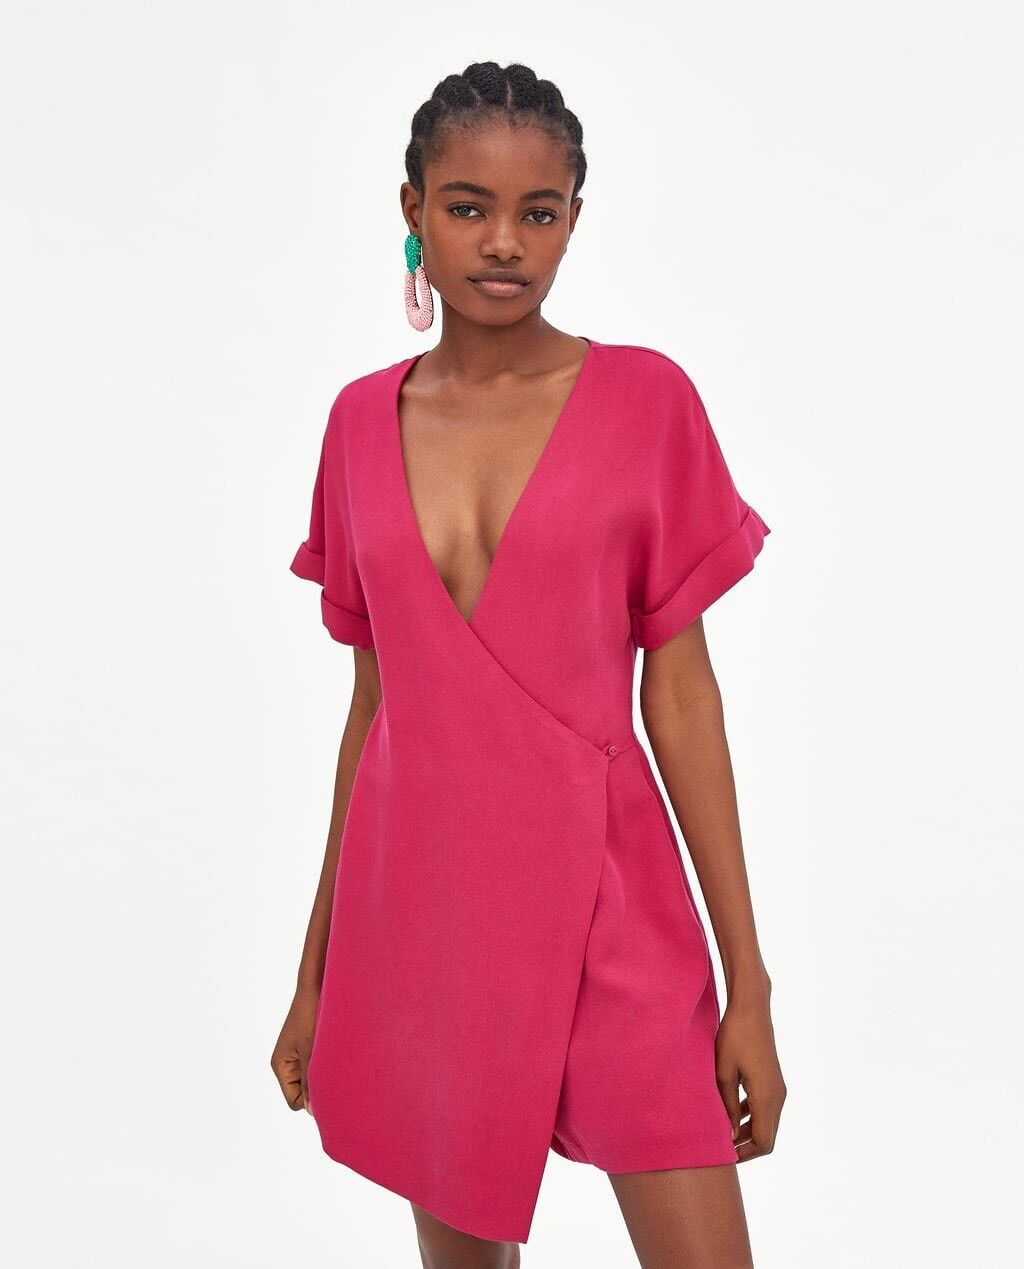 ZARA Join Life Fuchsia Credver Playsuit Jumpsuit Dress S